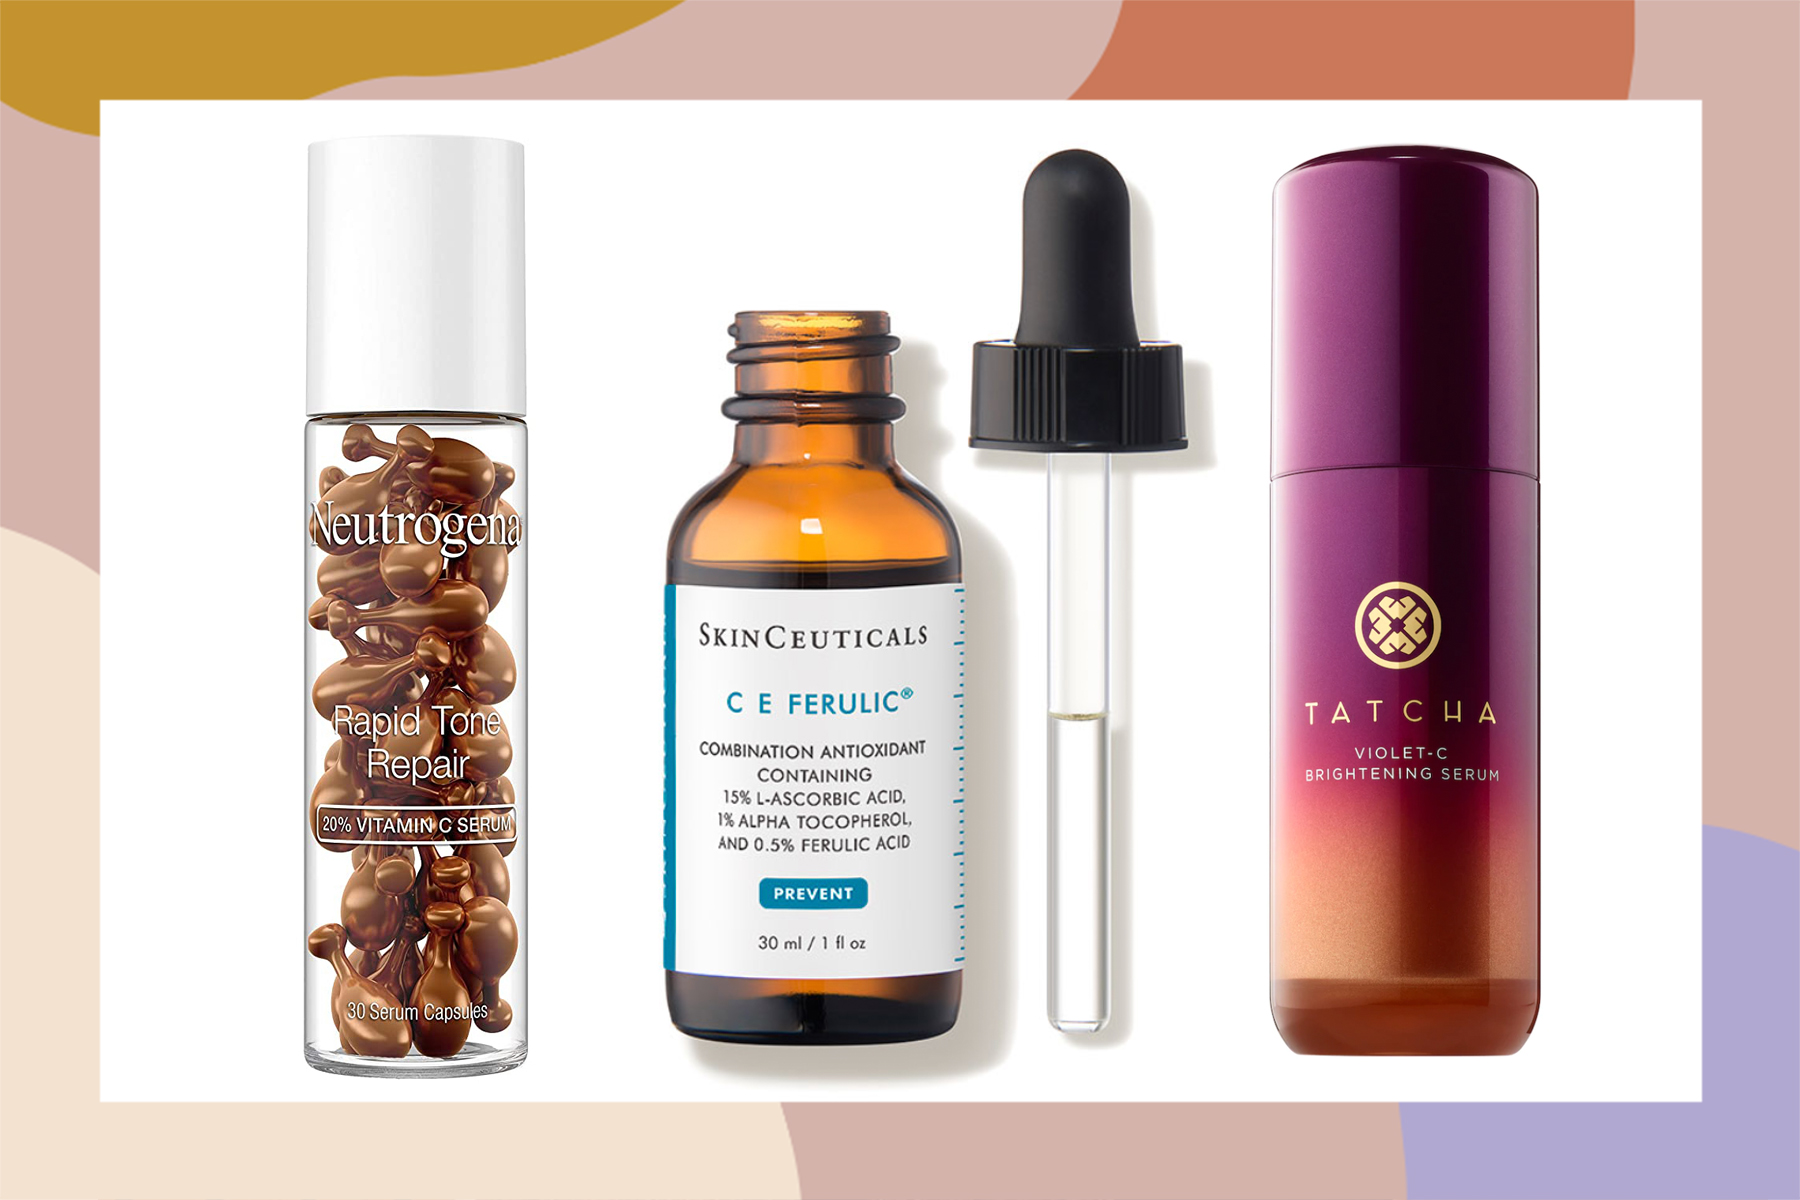 best vitamin c serums 2020 2021